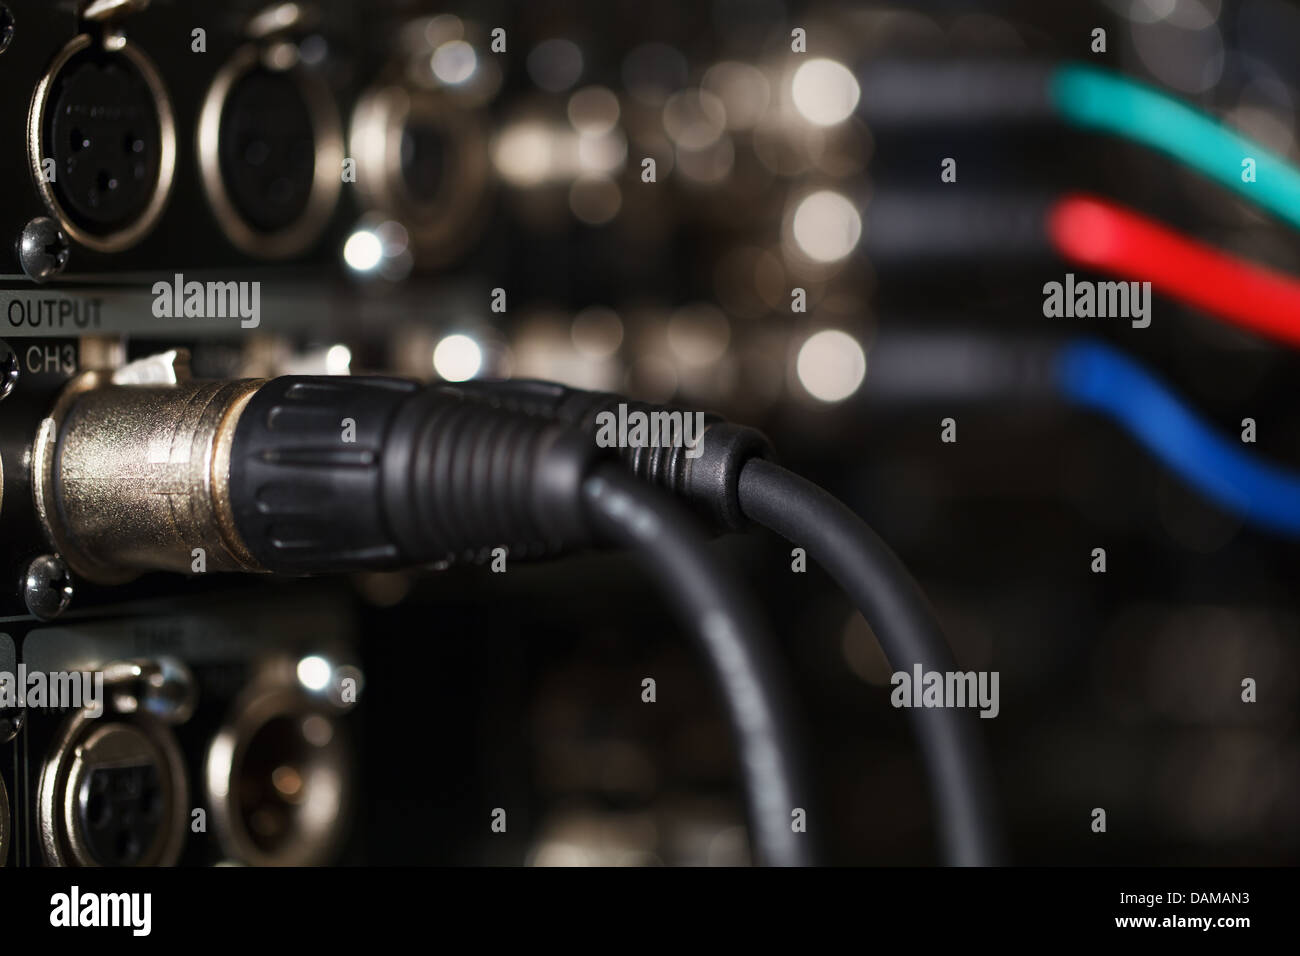 Audio XLR cables in the pro recorder. - Stock Image